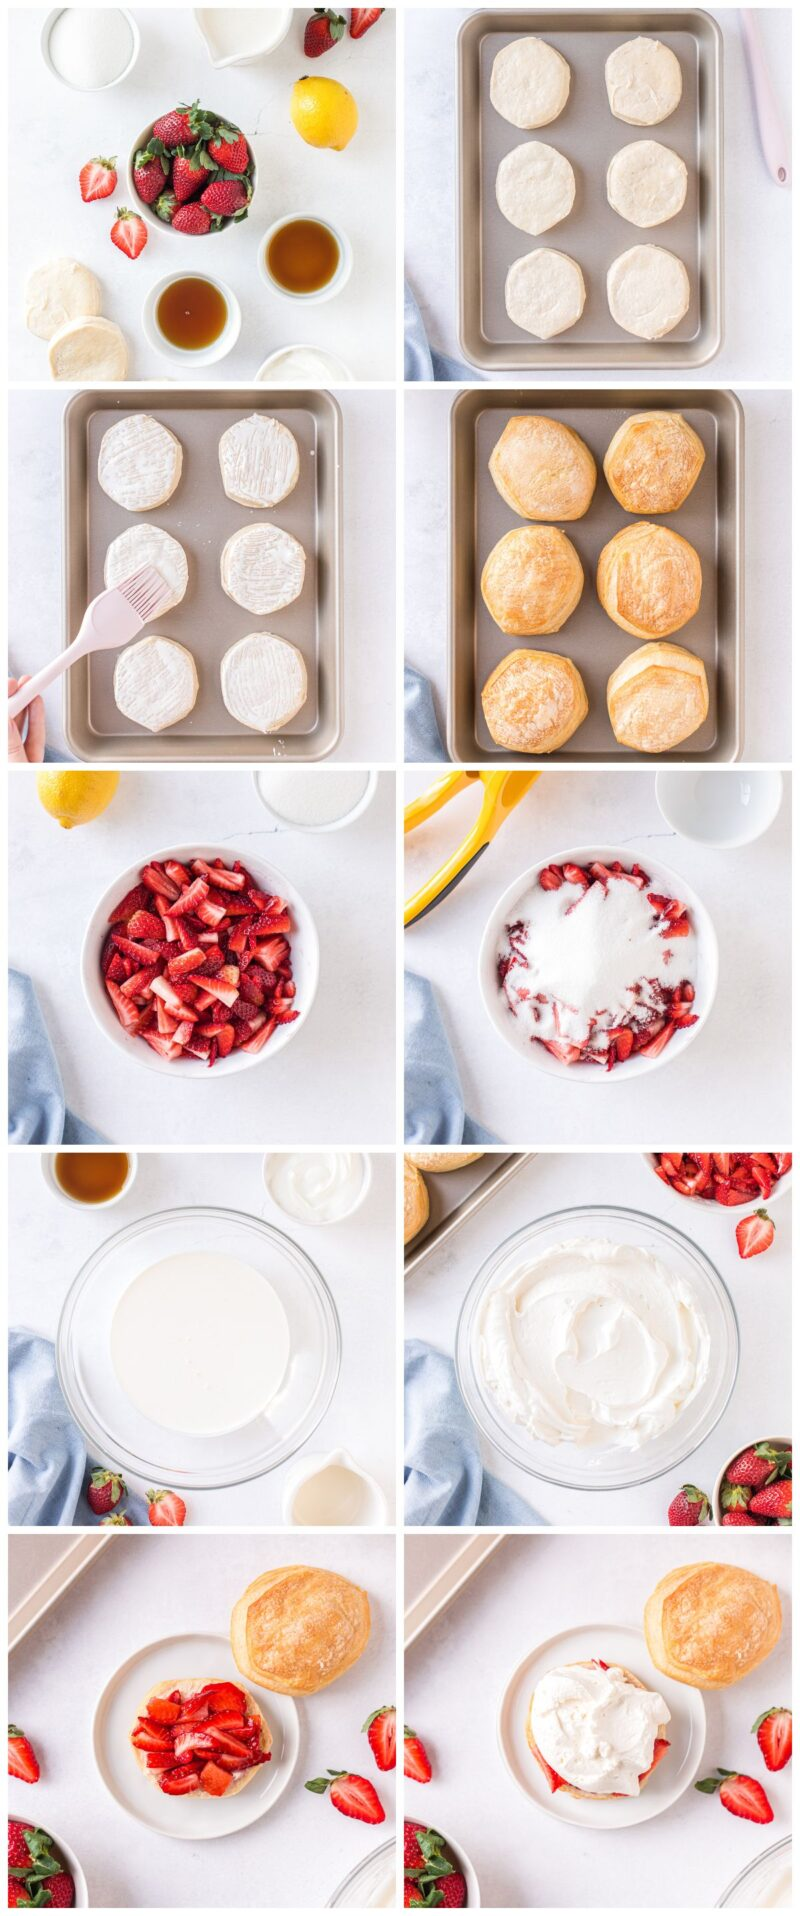 step by step photos for how to make strawberry shortcake